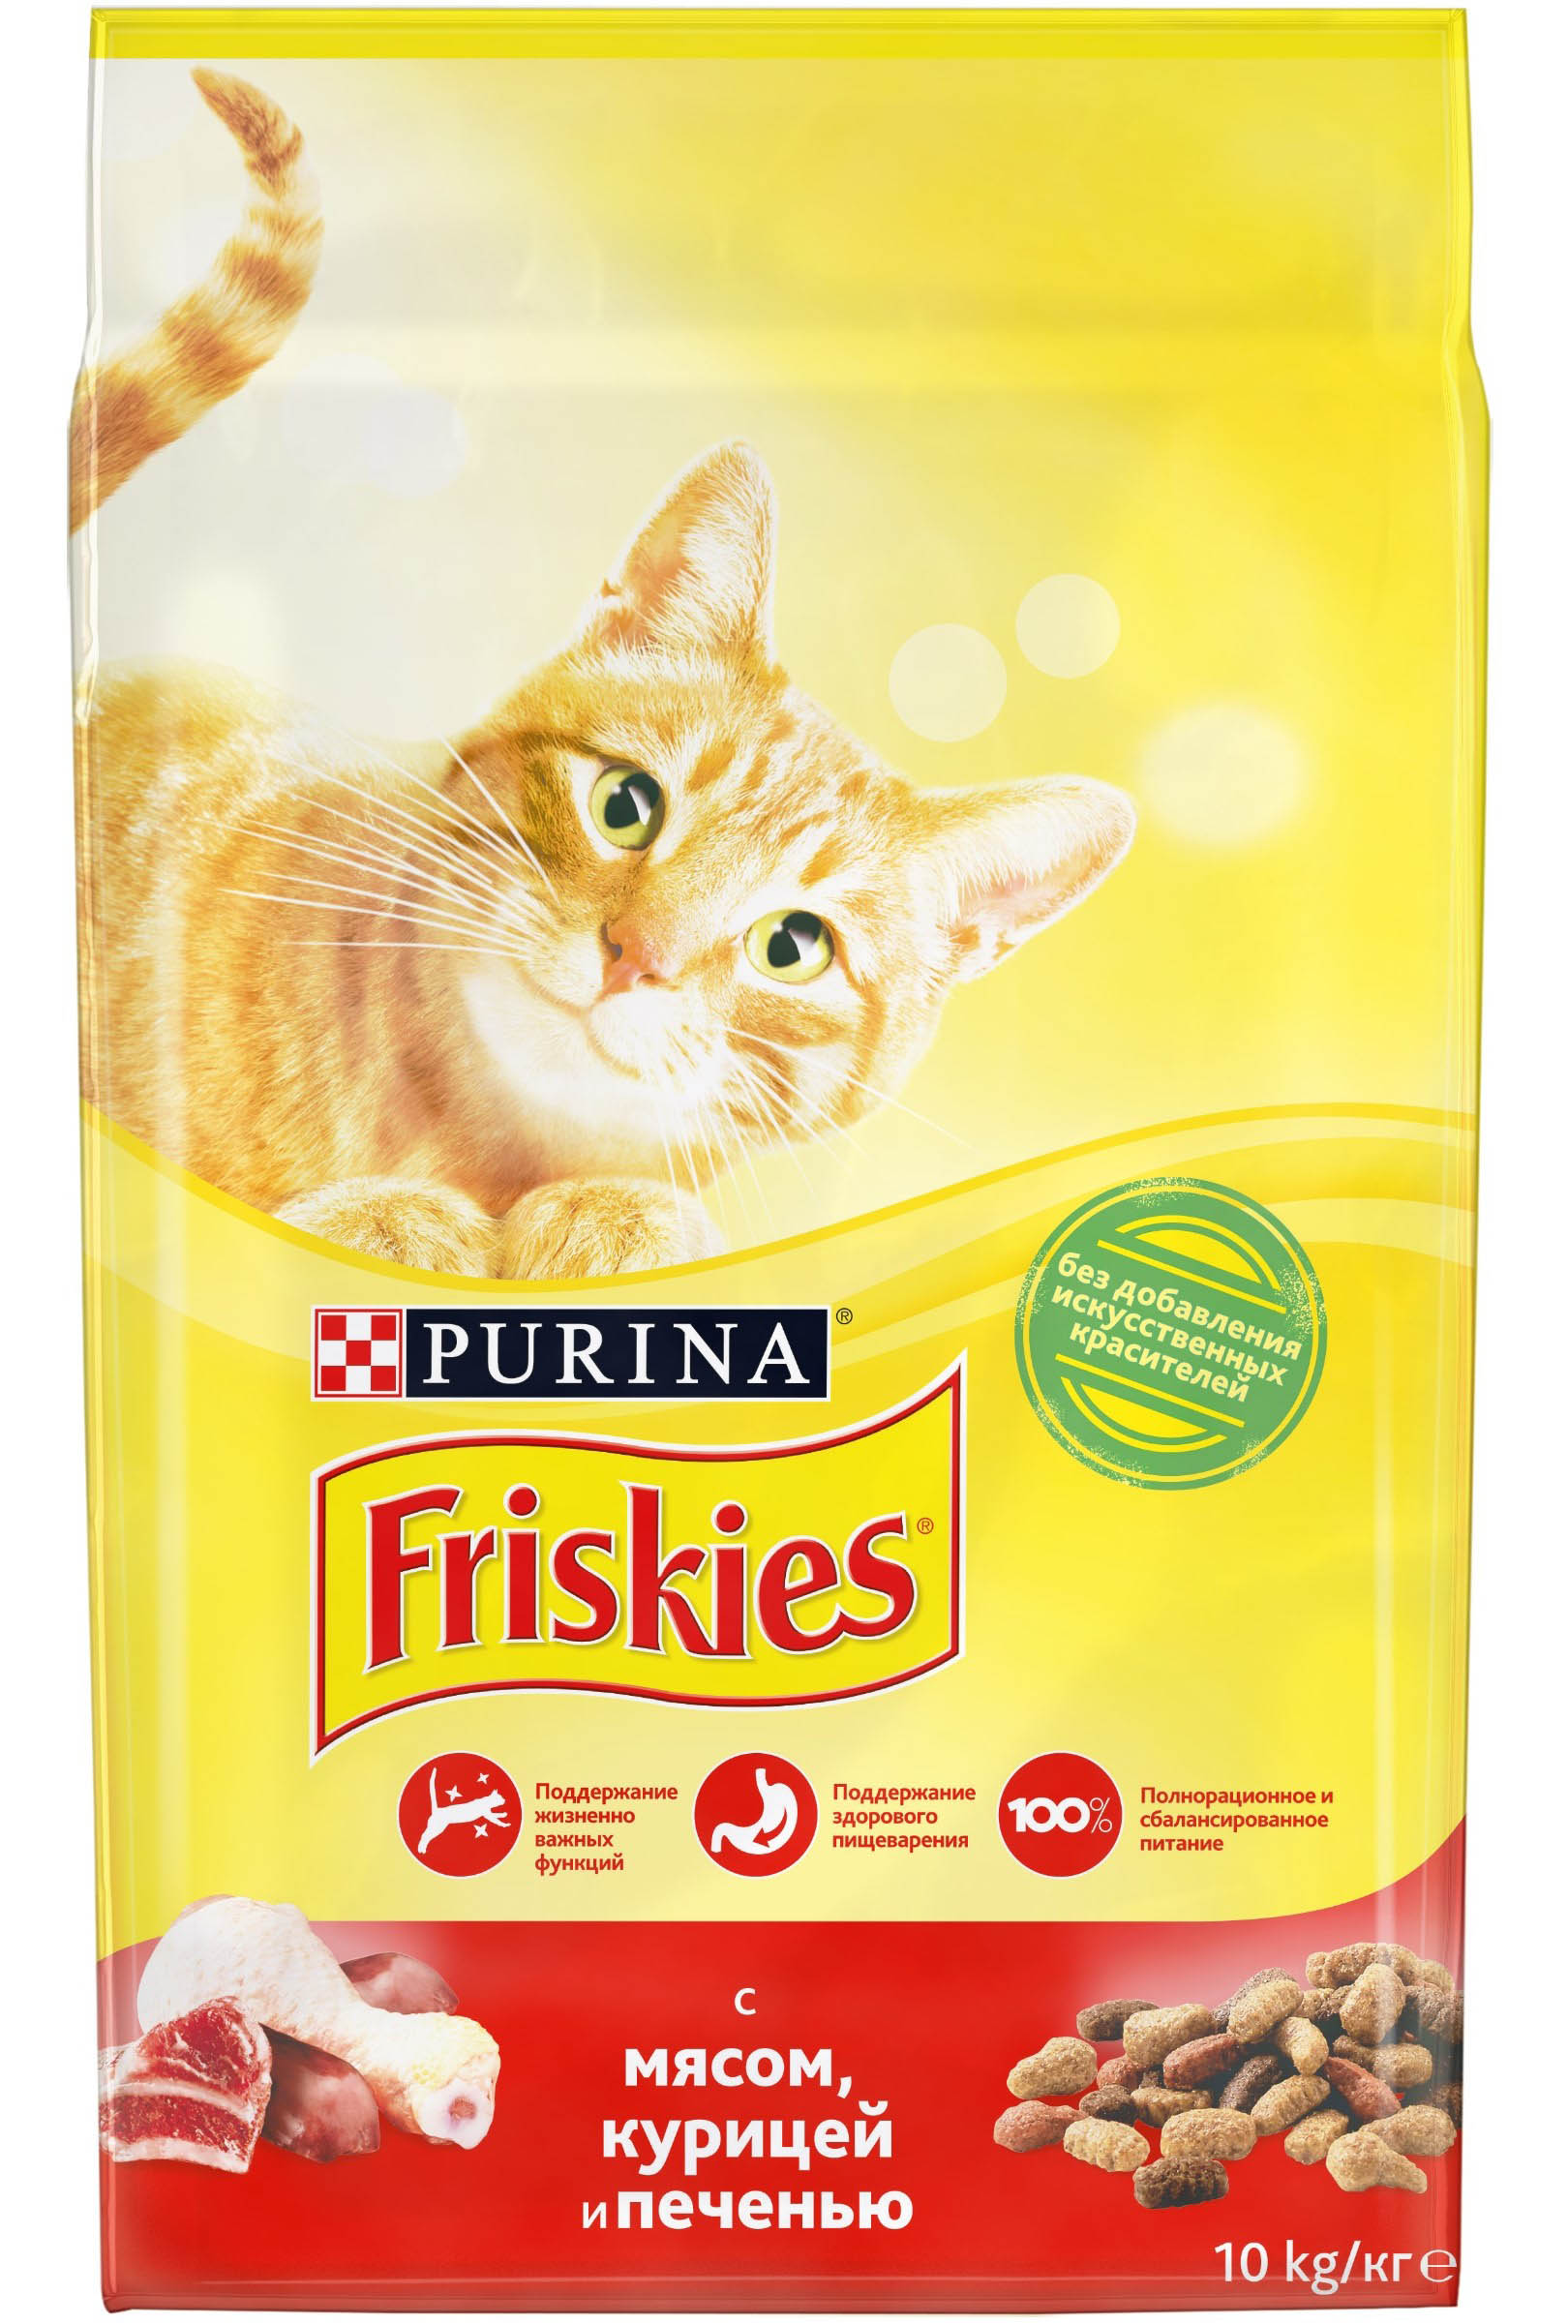 Friskies Adult Adult Cats, Meat And Vegetables, 10 Kg.